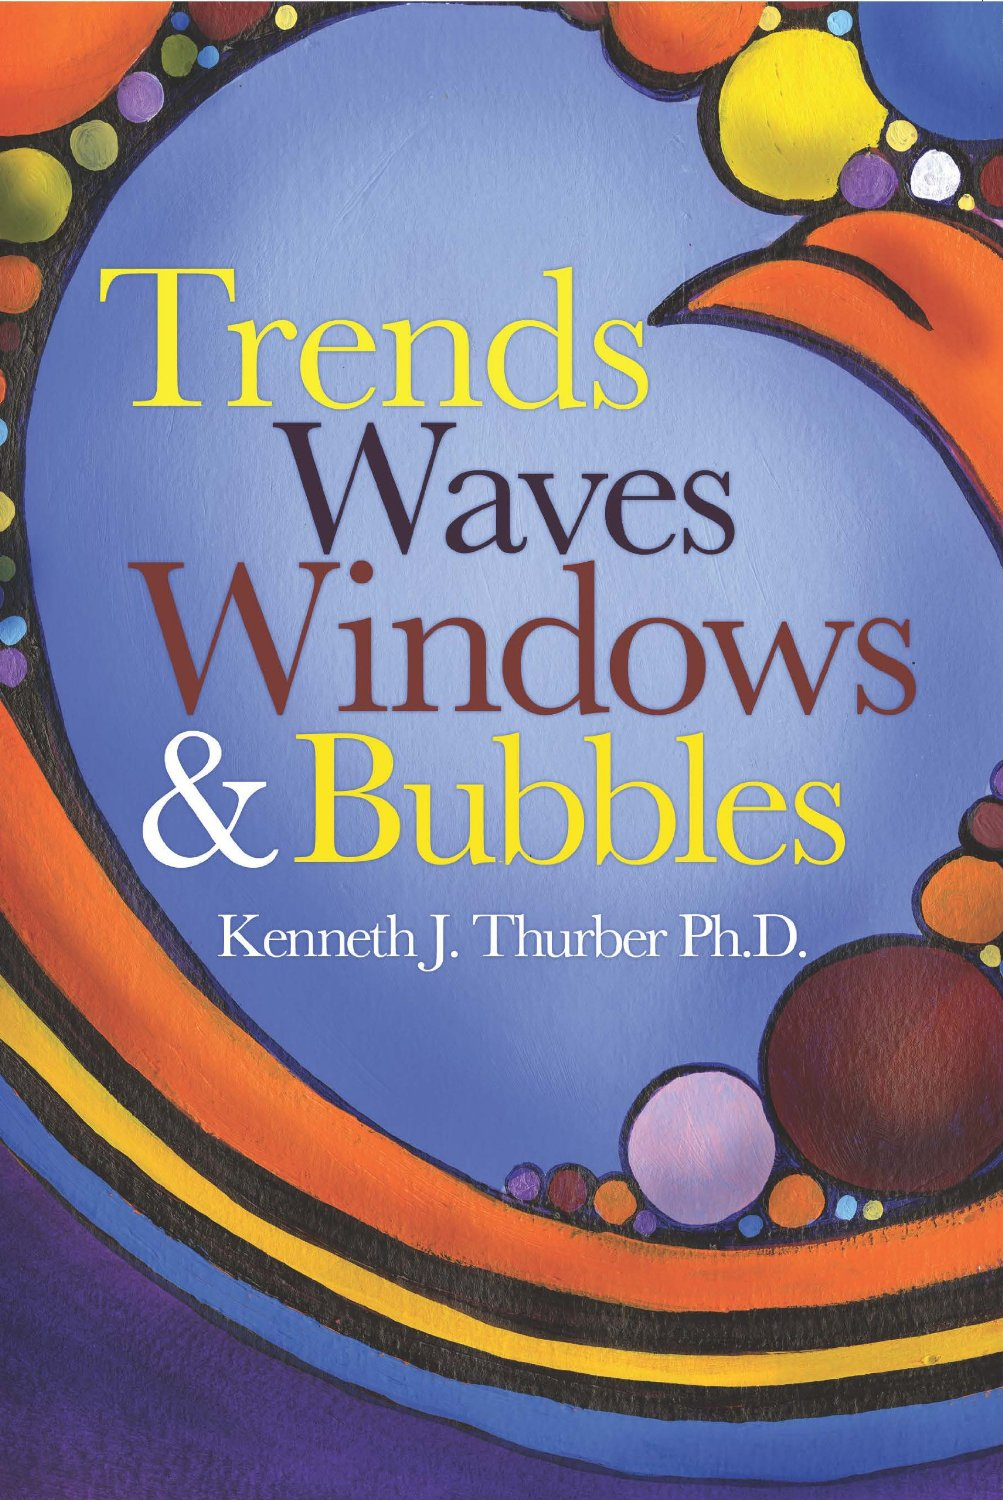 Trends, Waves, Windows, & Bubbles